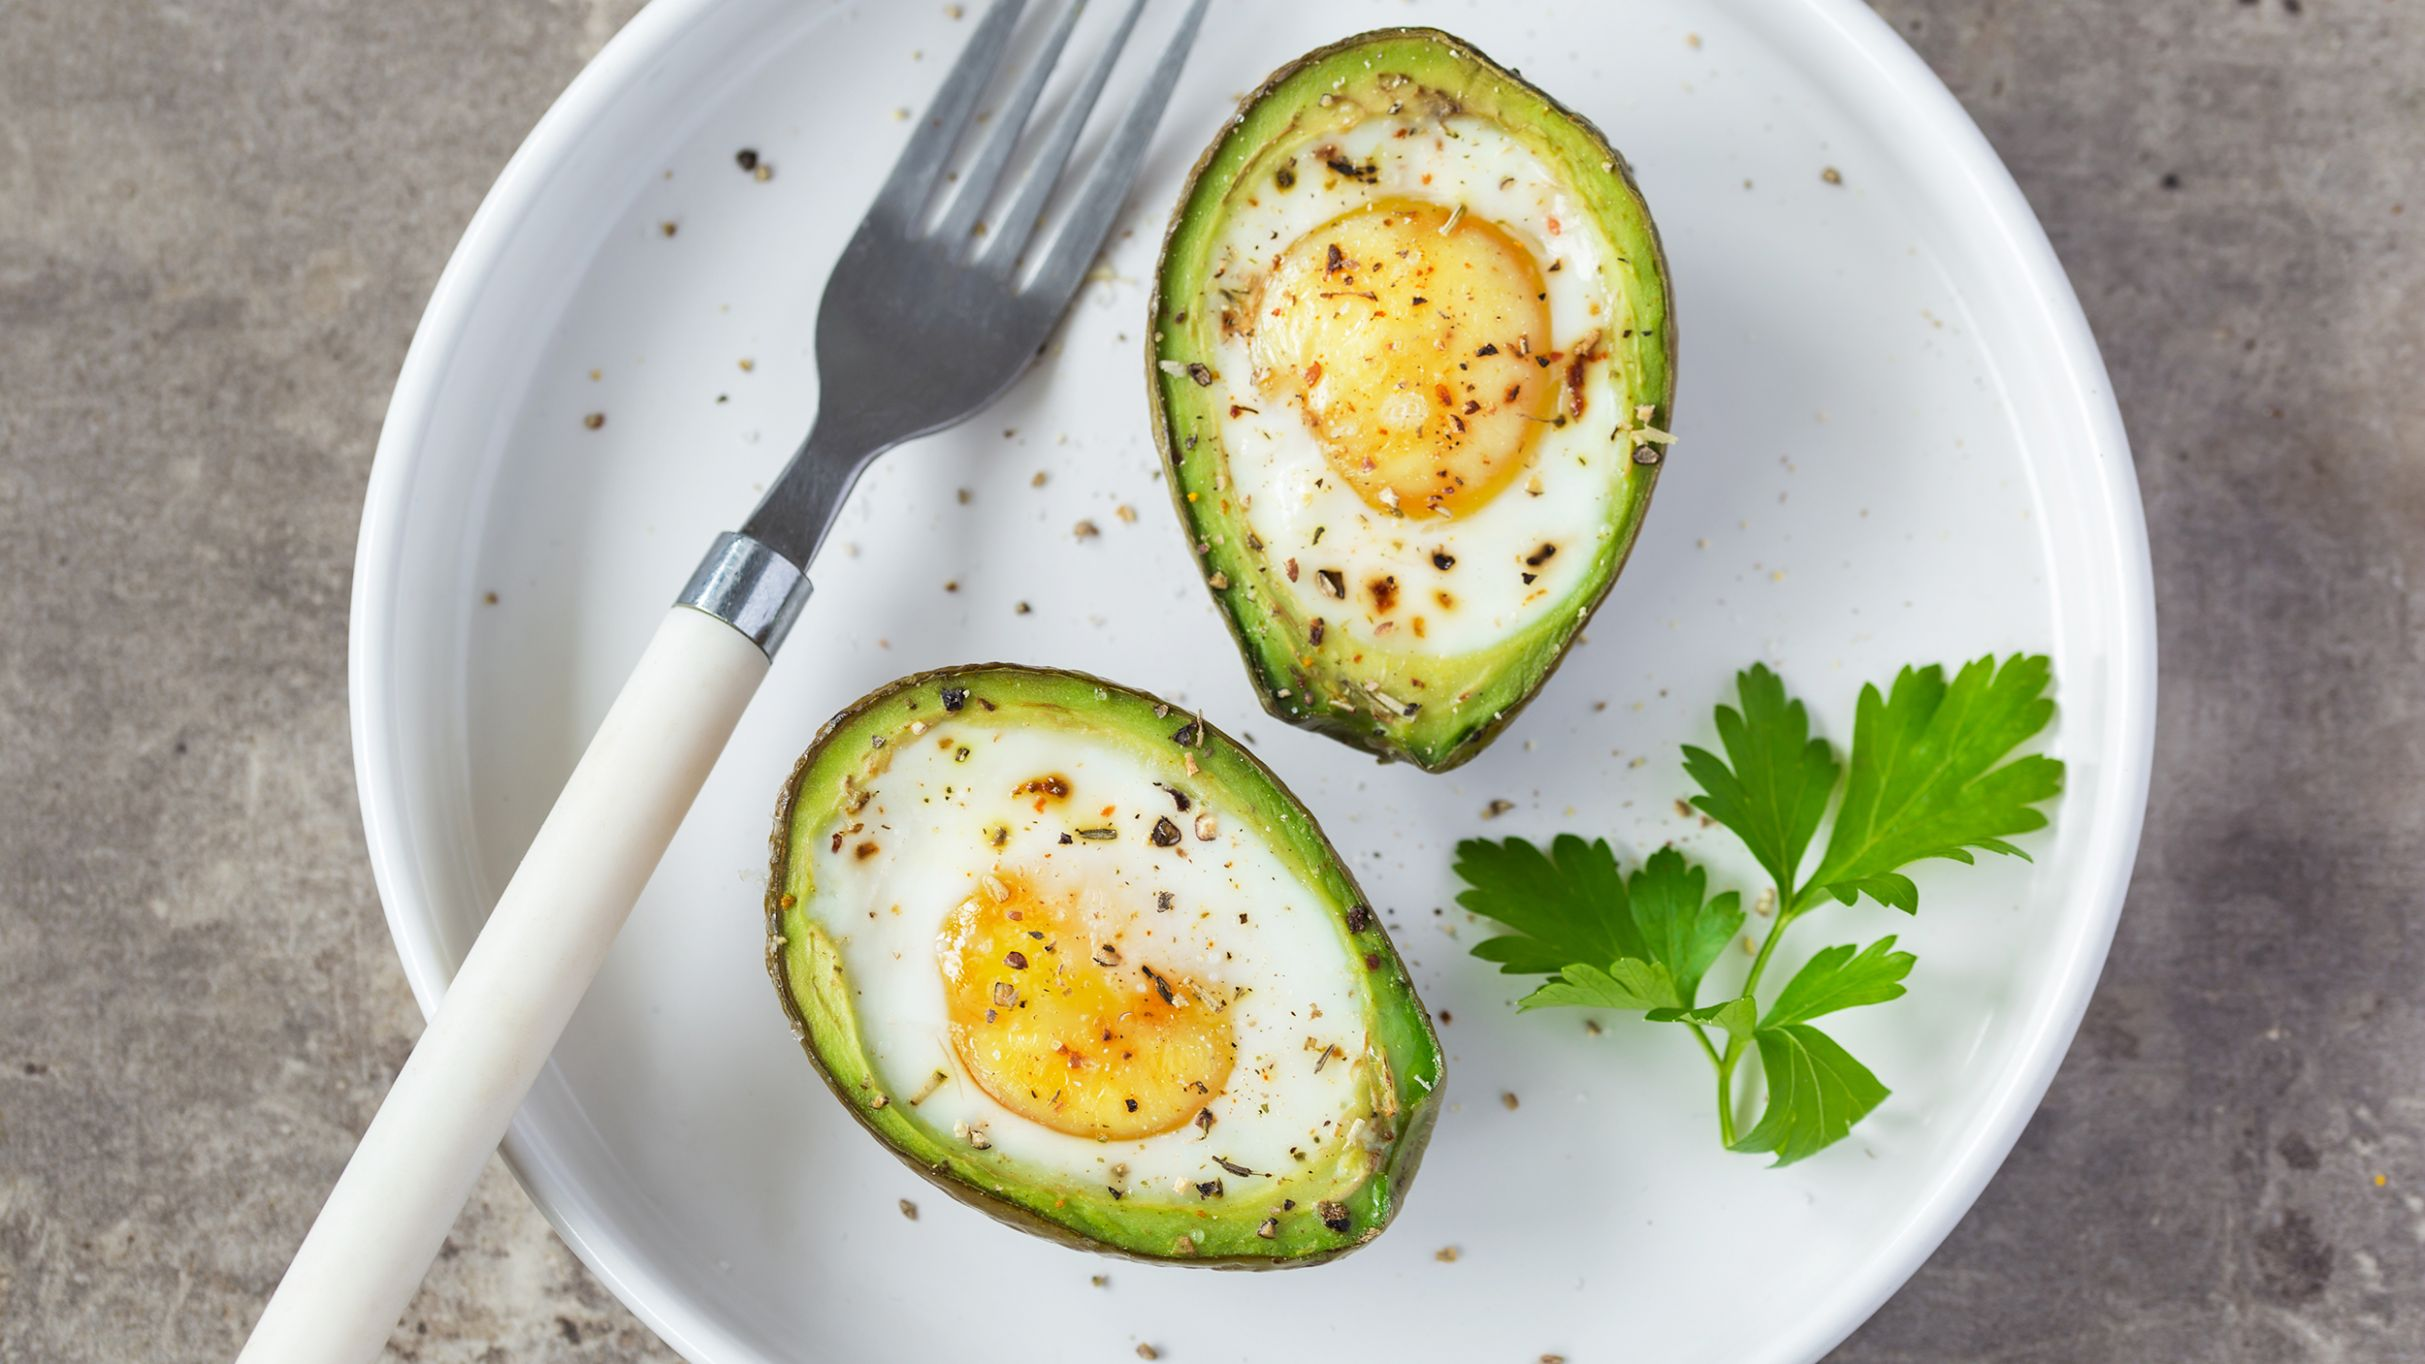 Baked Eggs in Avocado - Recipes Egg Avocado